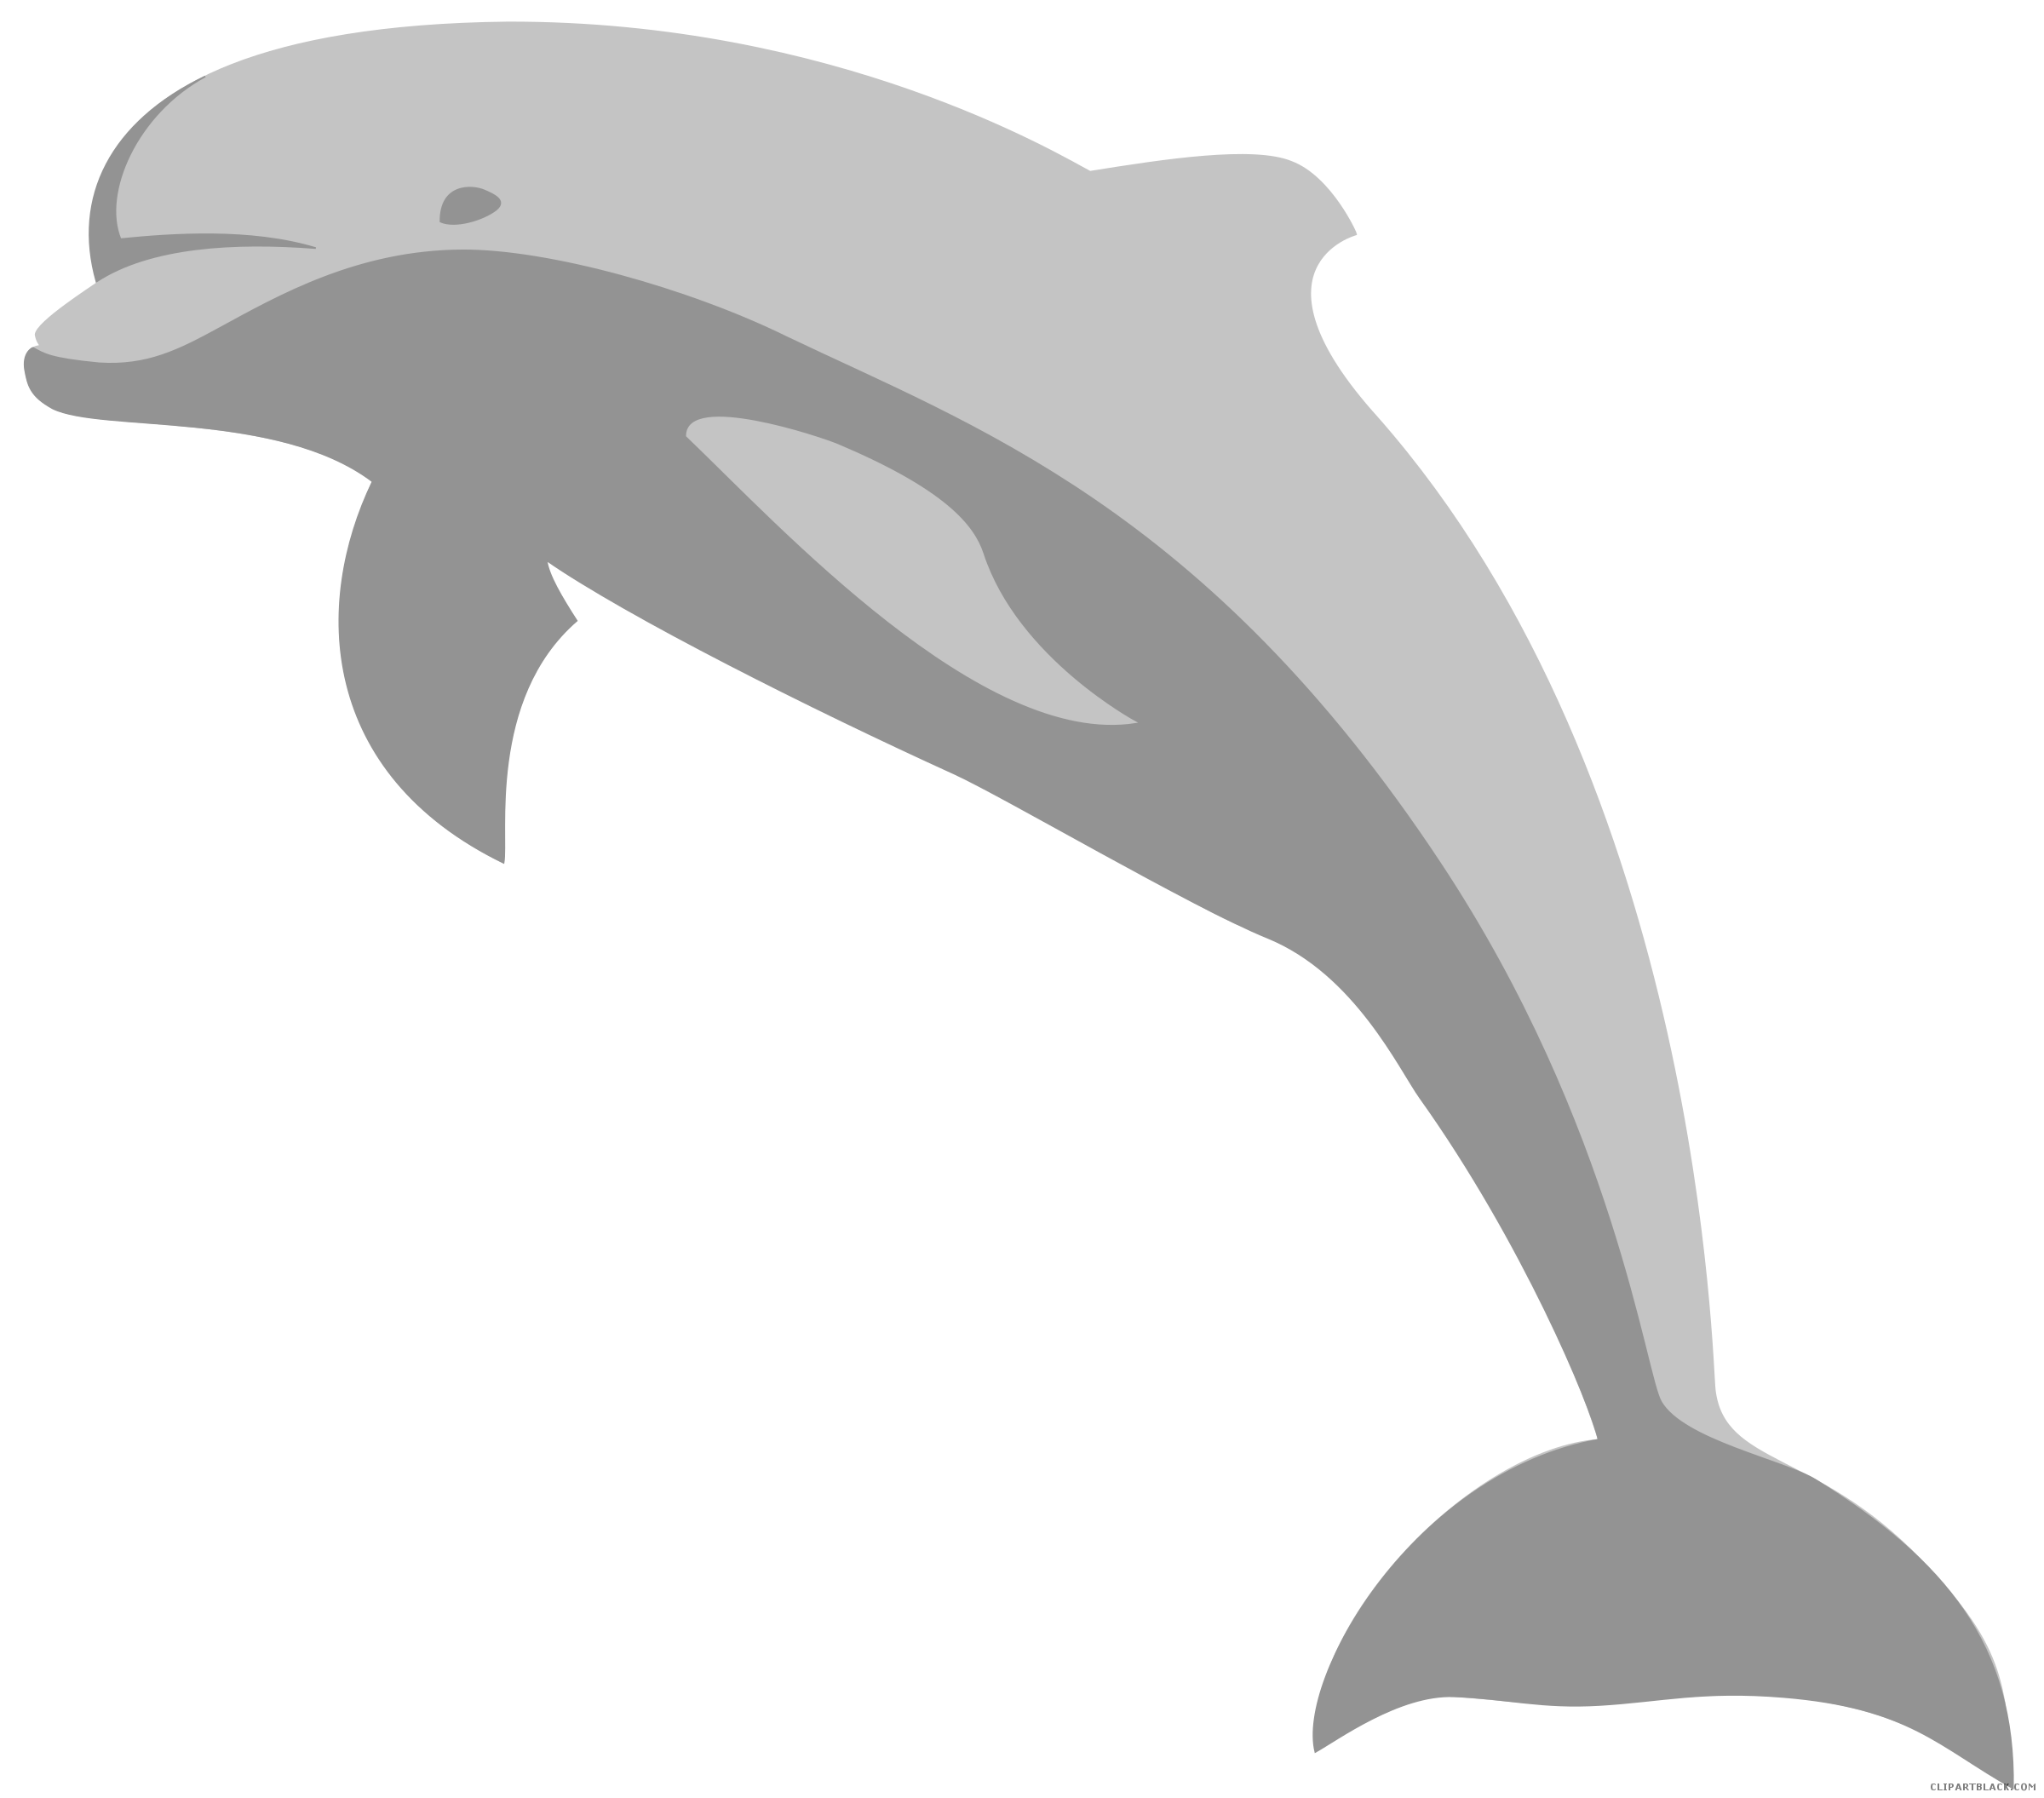 graphic freeuse stock Amazing clipartblack com animal. Dolphin clipart black and white